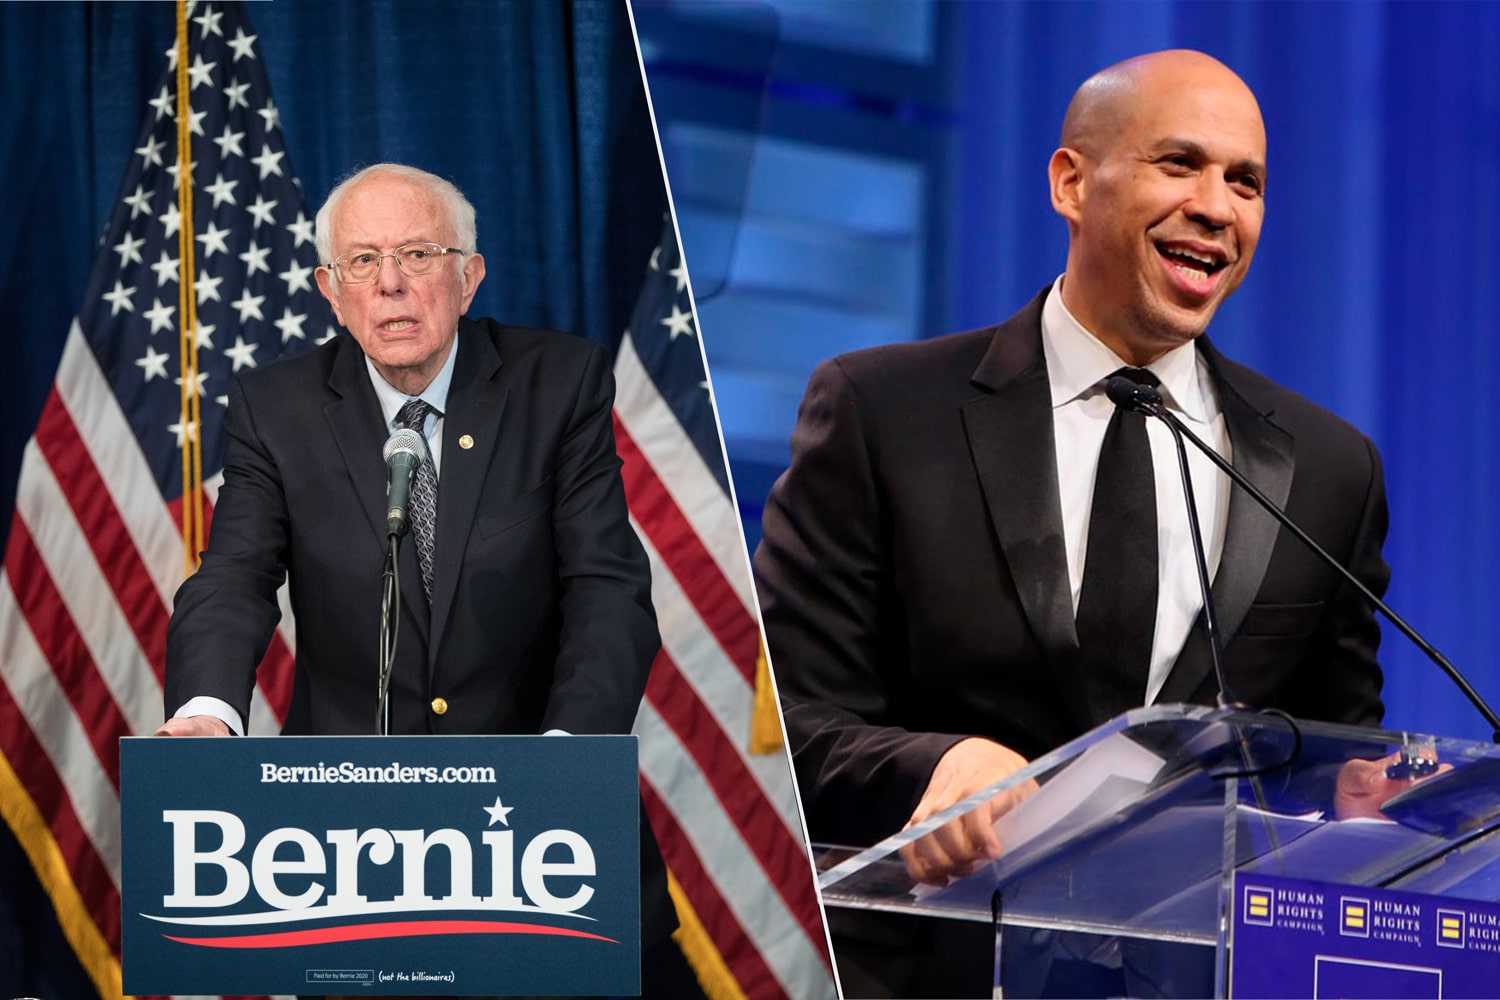 Bernie Sanders, Cory Booker Discuss Marijuana Legalization In the U.S.